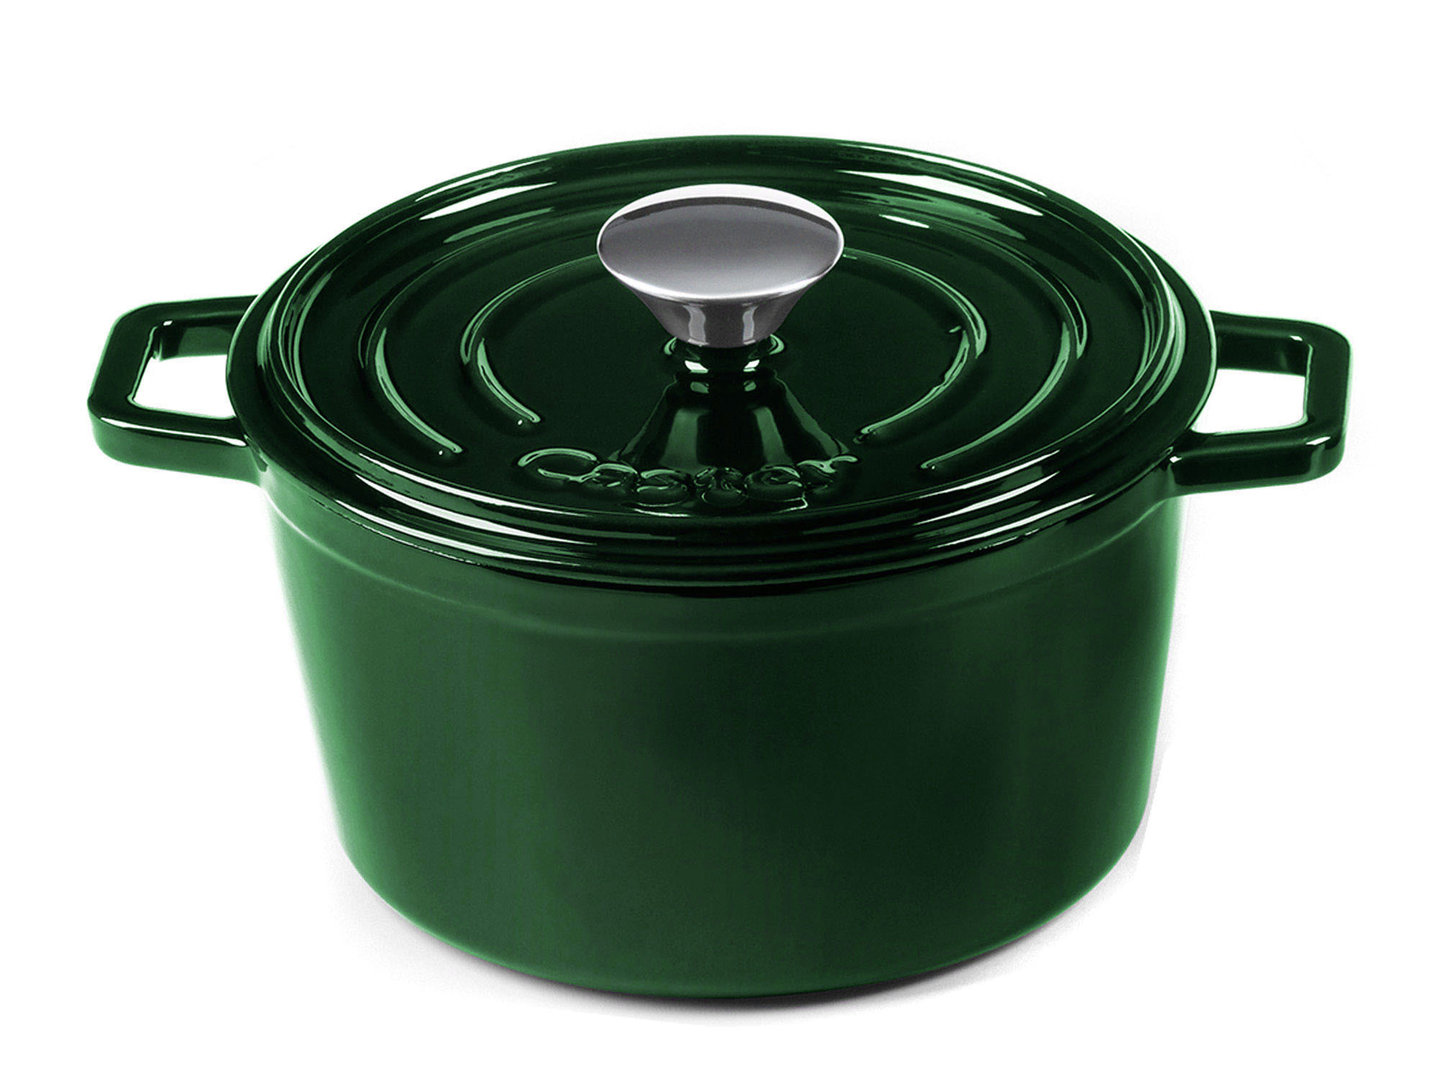 CASTEY Gusseisen Topf COCOTTE 20 cm JADE Emaille